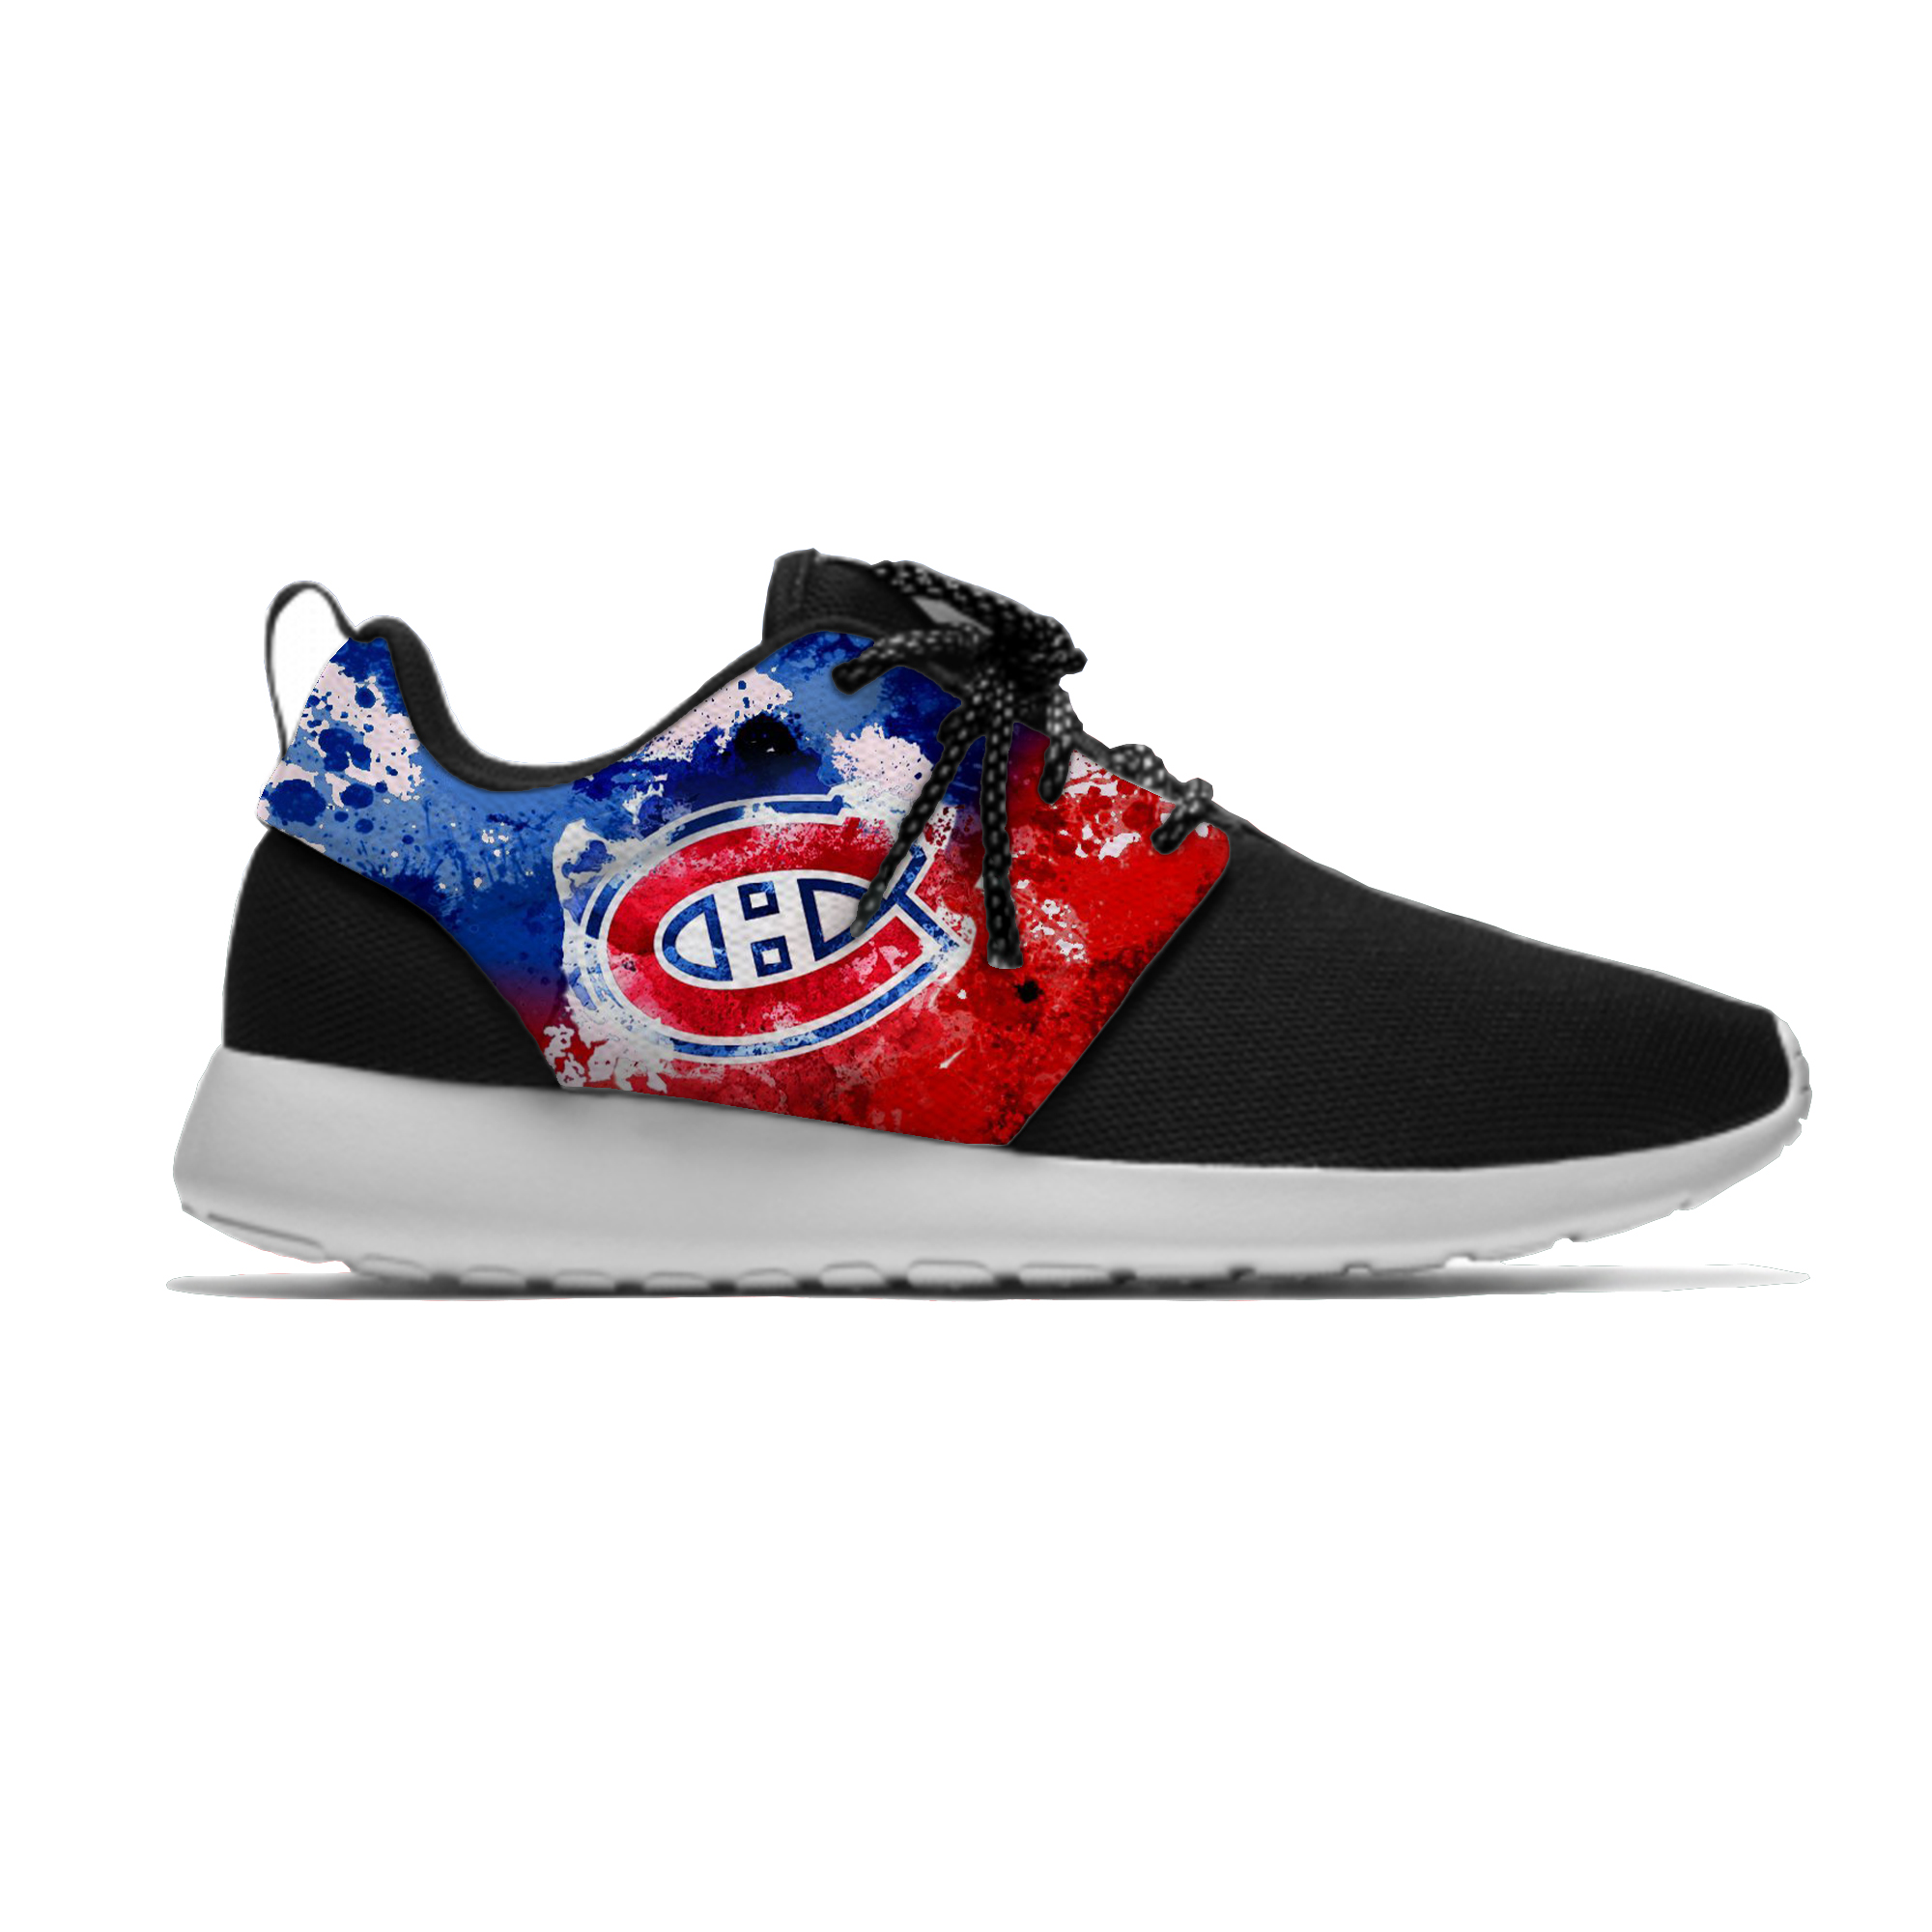 Lightweight Sport Canadiens Shoes Breathable Casual Sneakers Men/Women Montreal Ice Hockey Fans Running Meshy Shoes